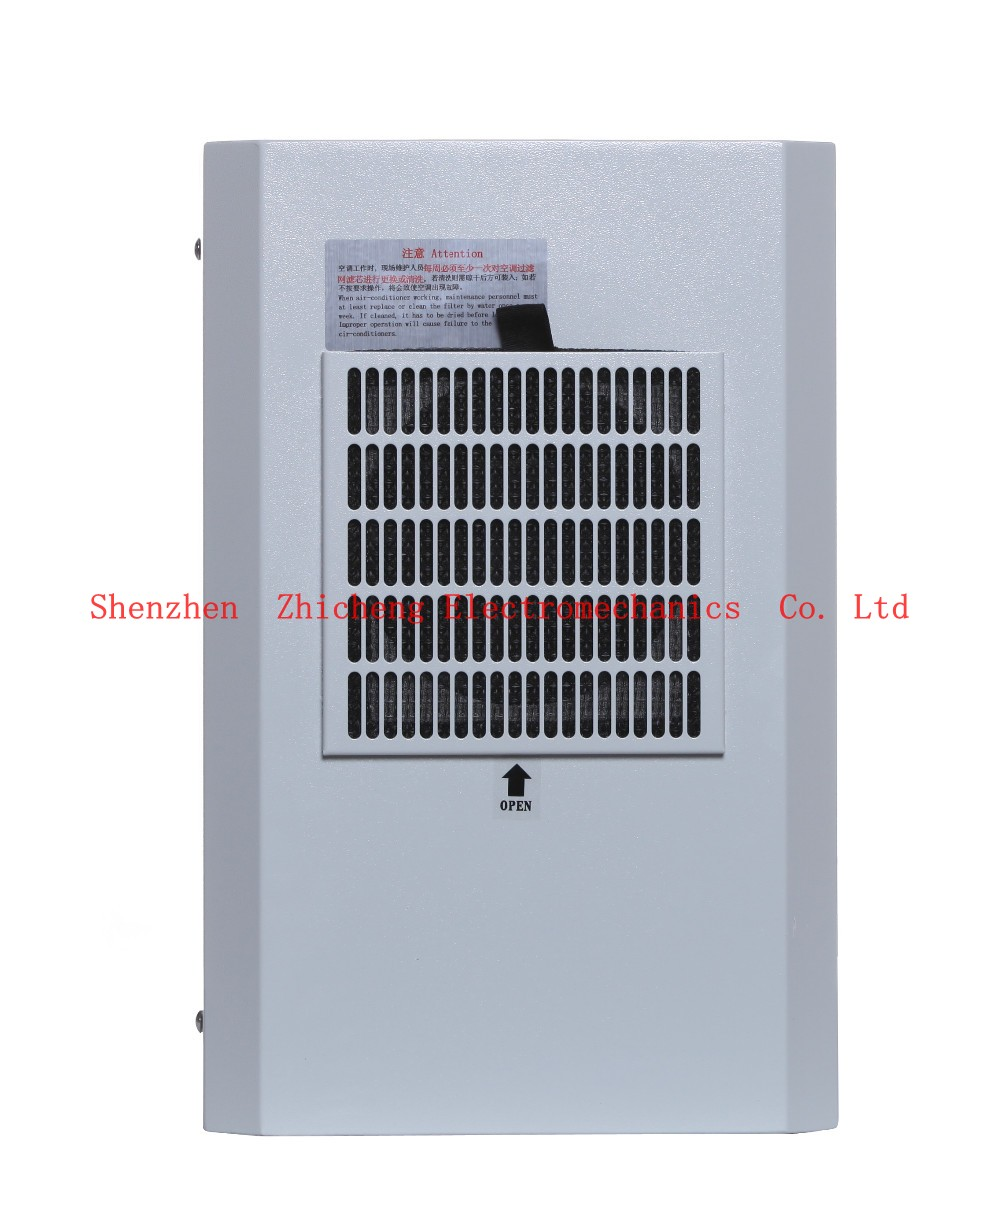 Beautiful Radiator Heat Exchanger Air Engraving CNC Cabinet Air Conditioner Control  Cabinet Wall Cooler(China)